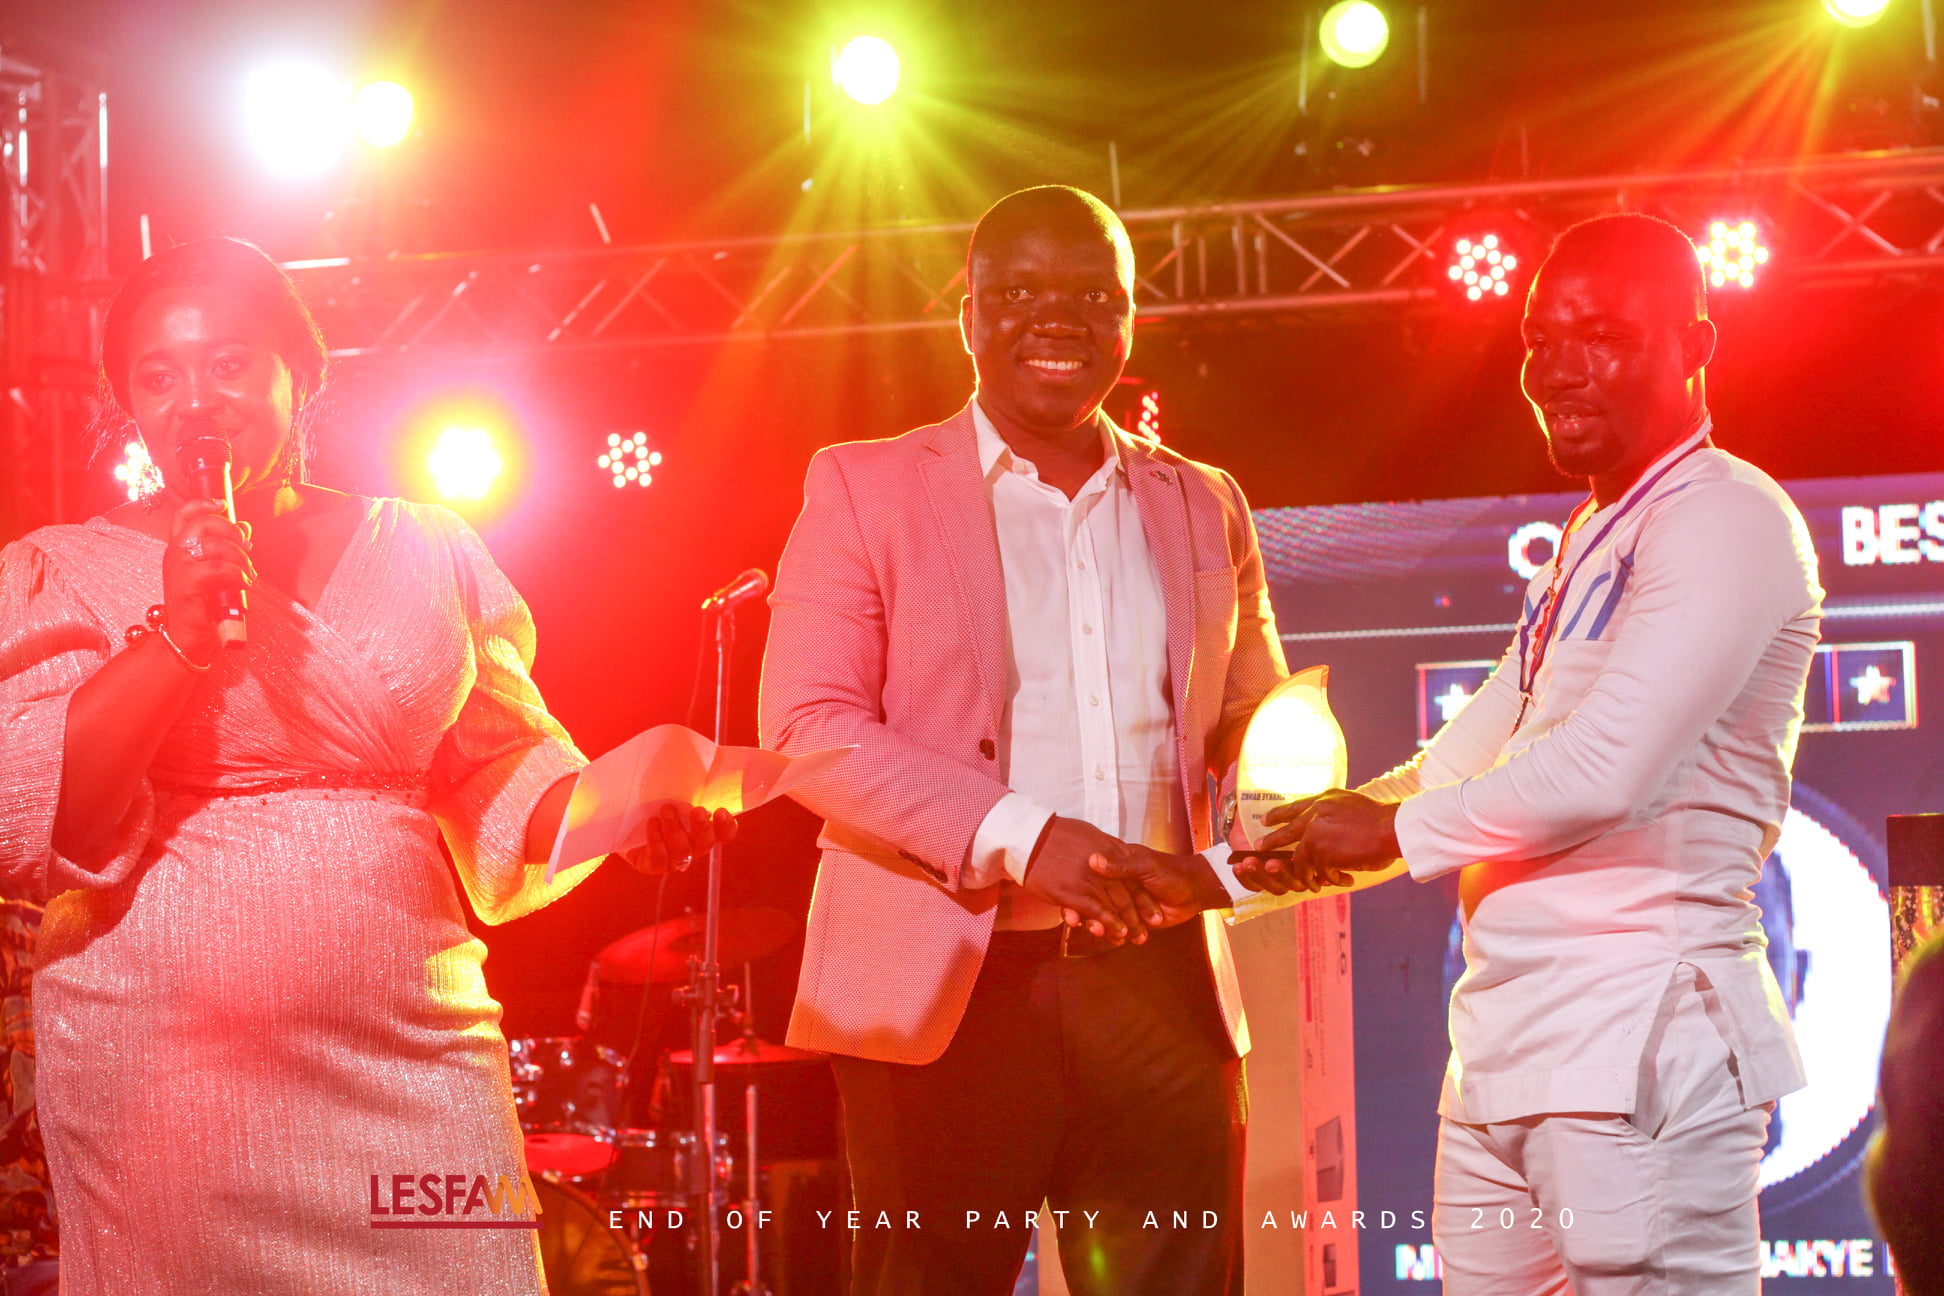 """Mr. Dominic Amakye Banks Aka KALA Wins """"Overall Best Work"""" At Lesfam End of Year Party & Awards 2020"""